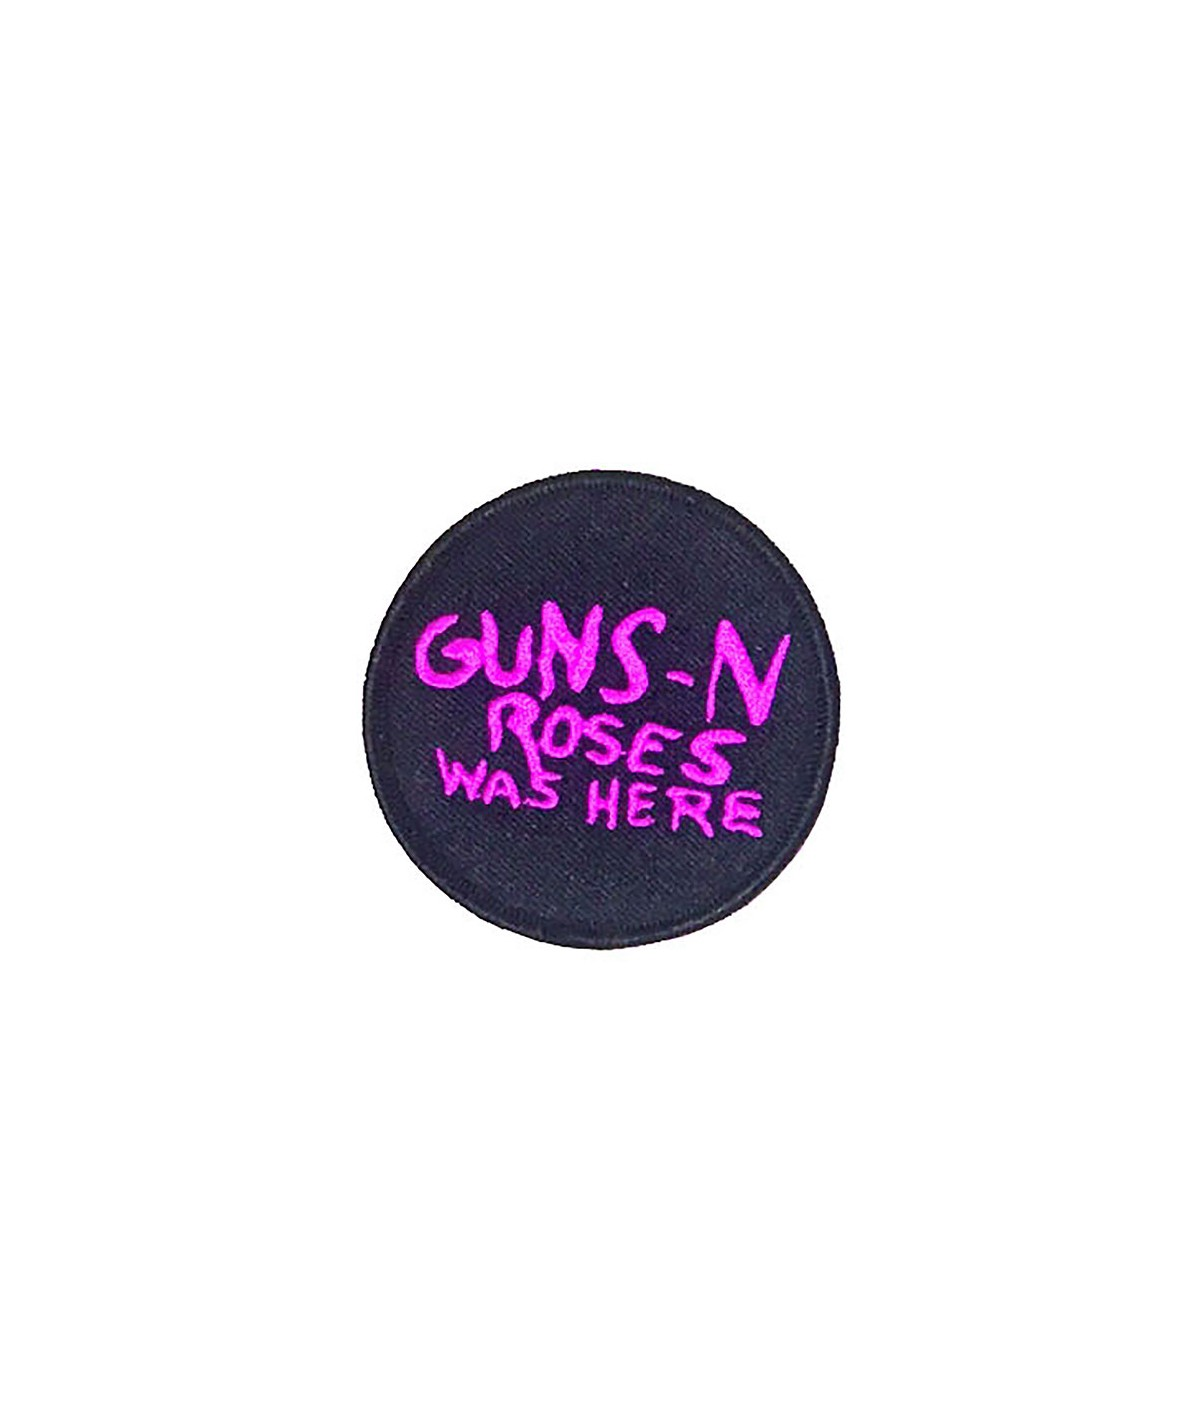 Patch Guns N' Roses: Was Here